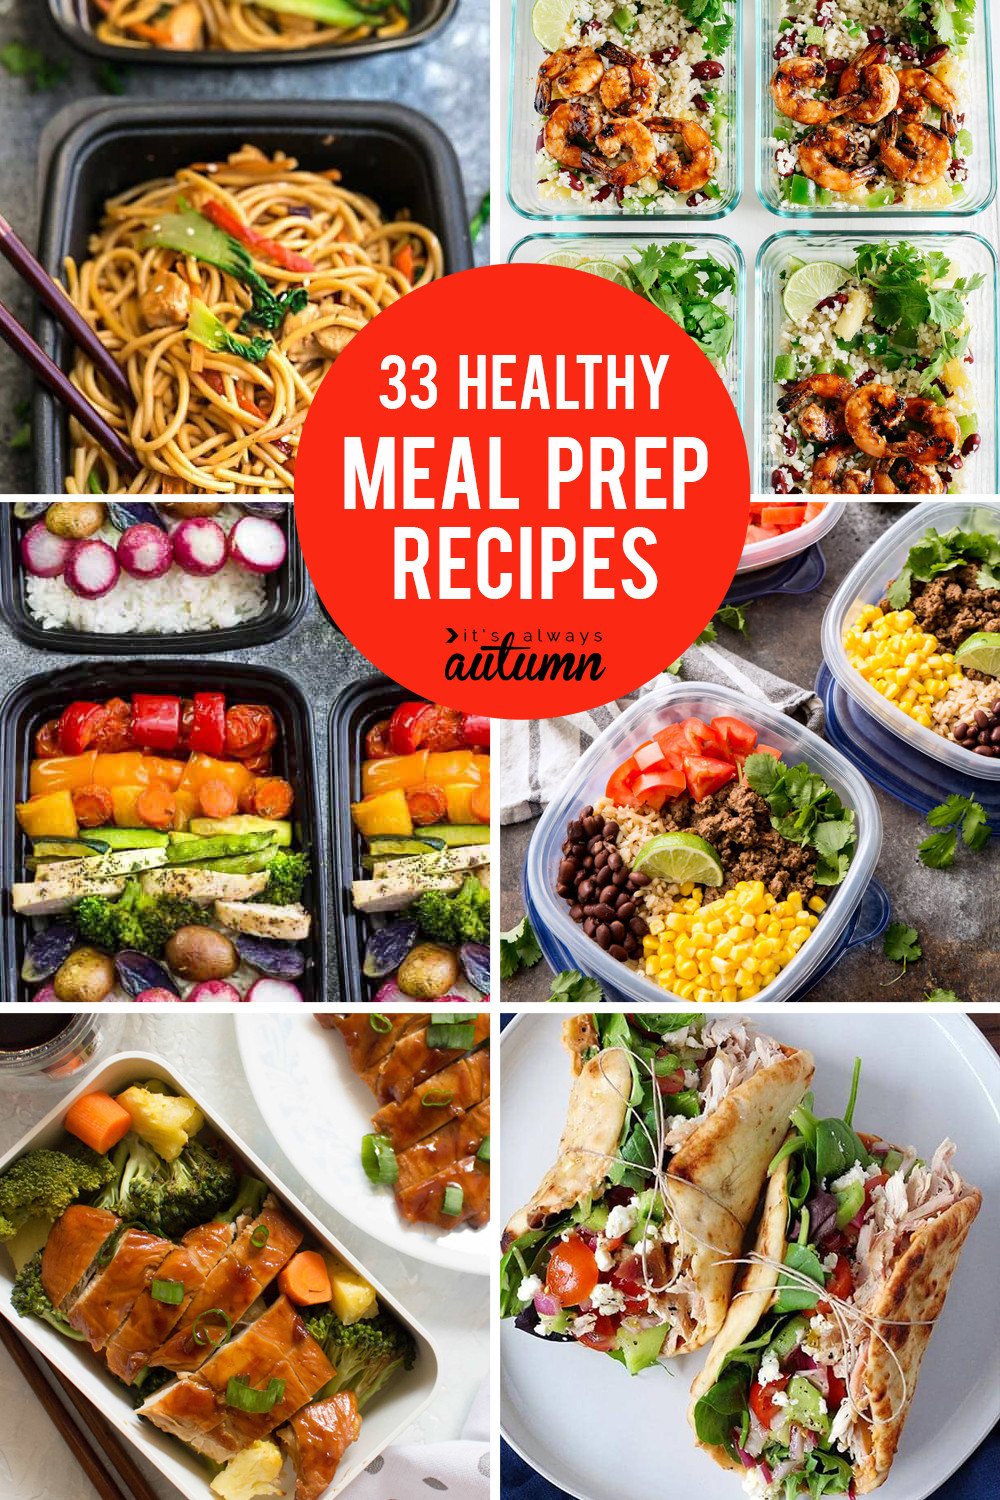 Easy Healthy Lunches To Make  33 delicious meal prep recipes for healthy lunches that